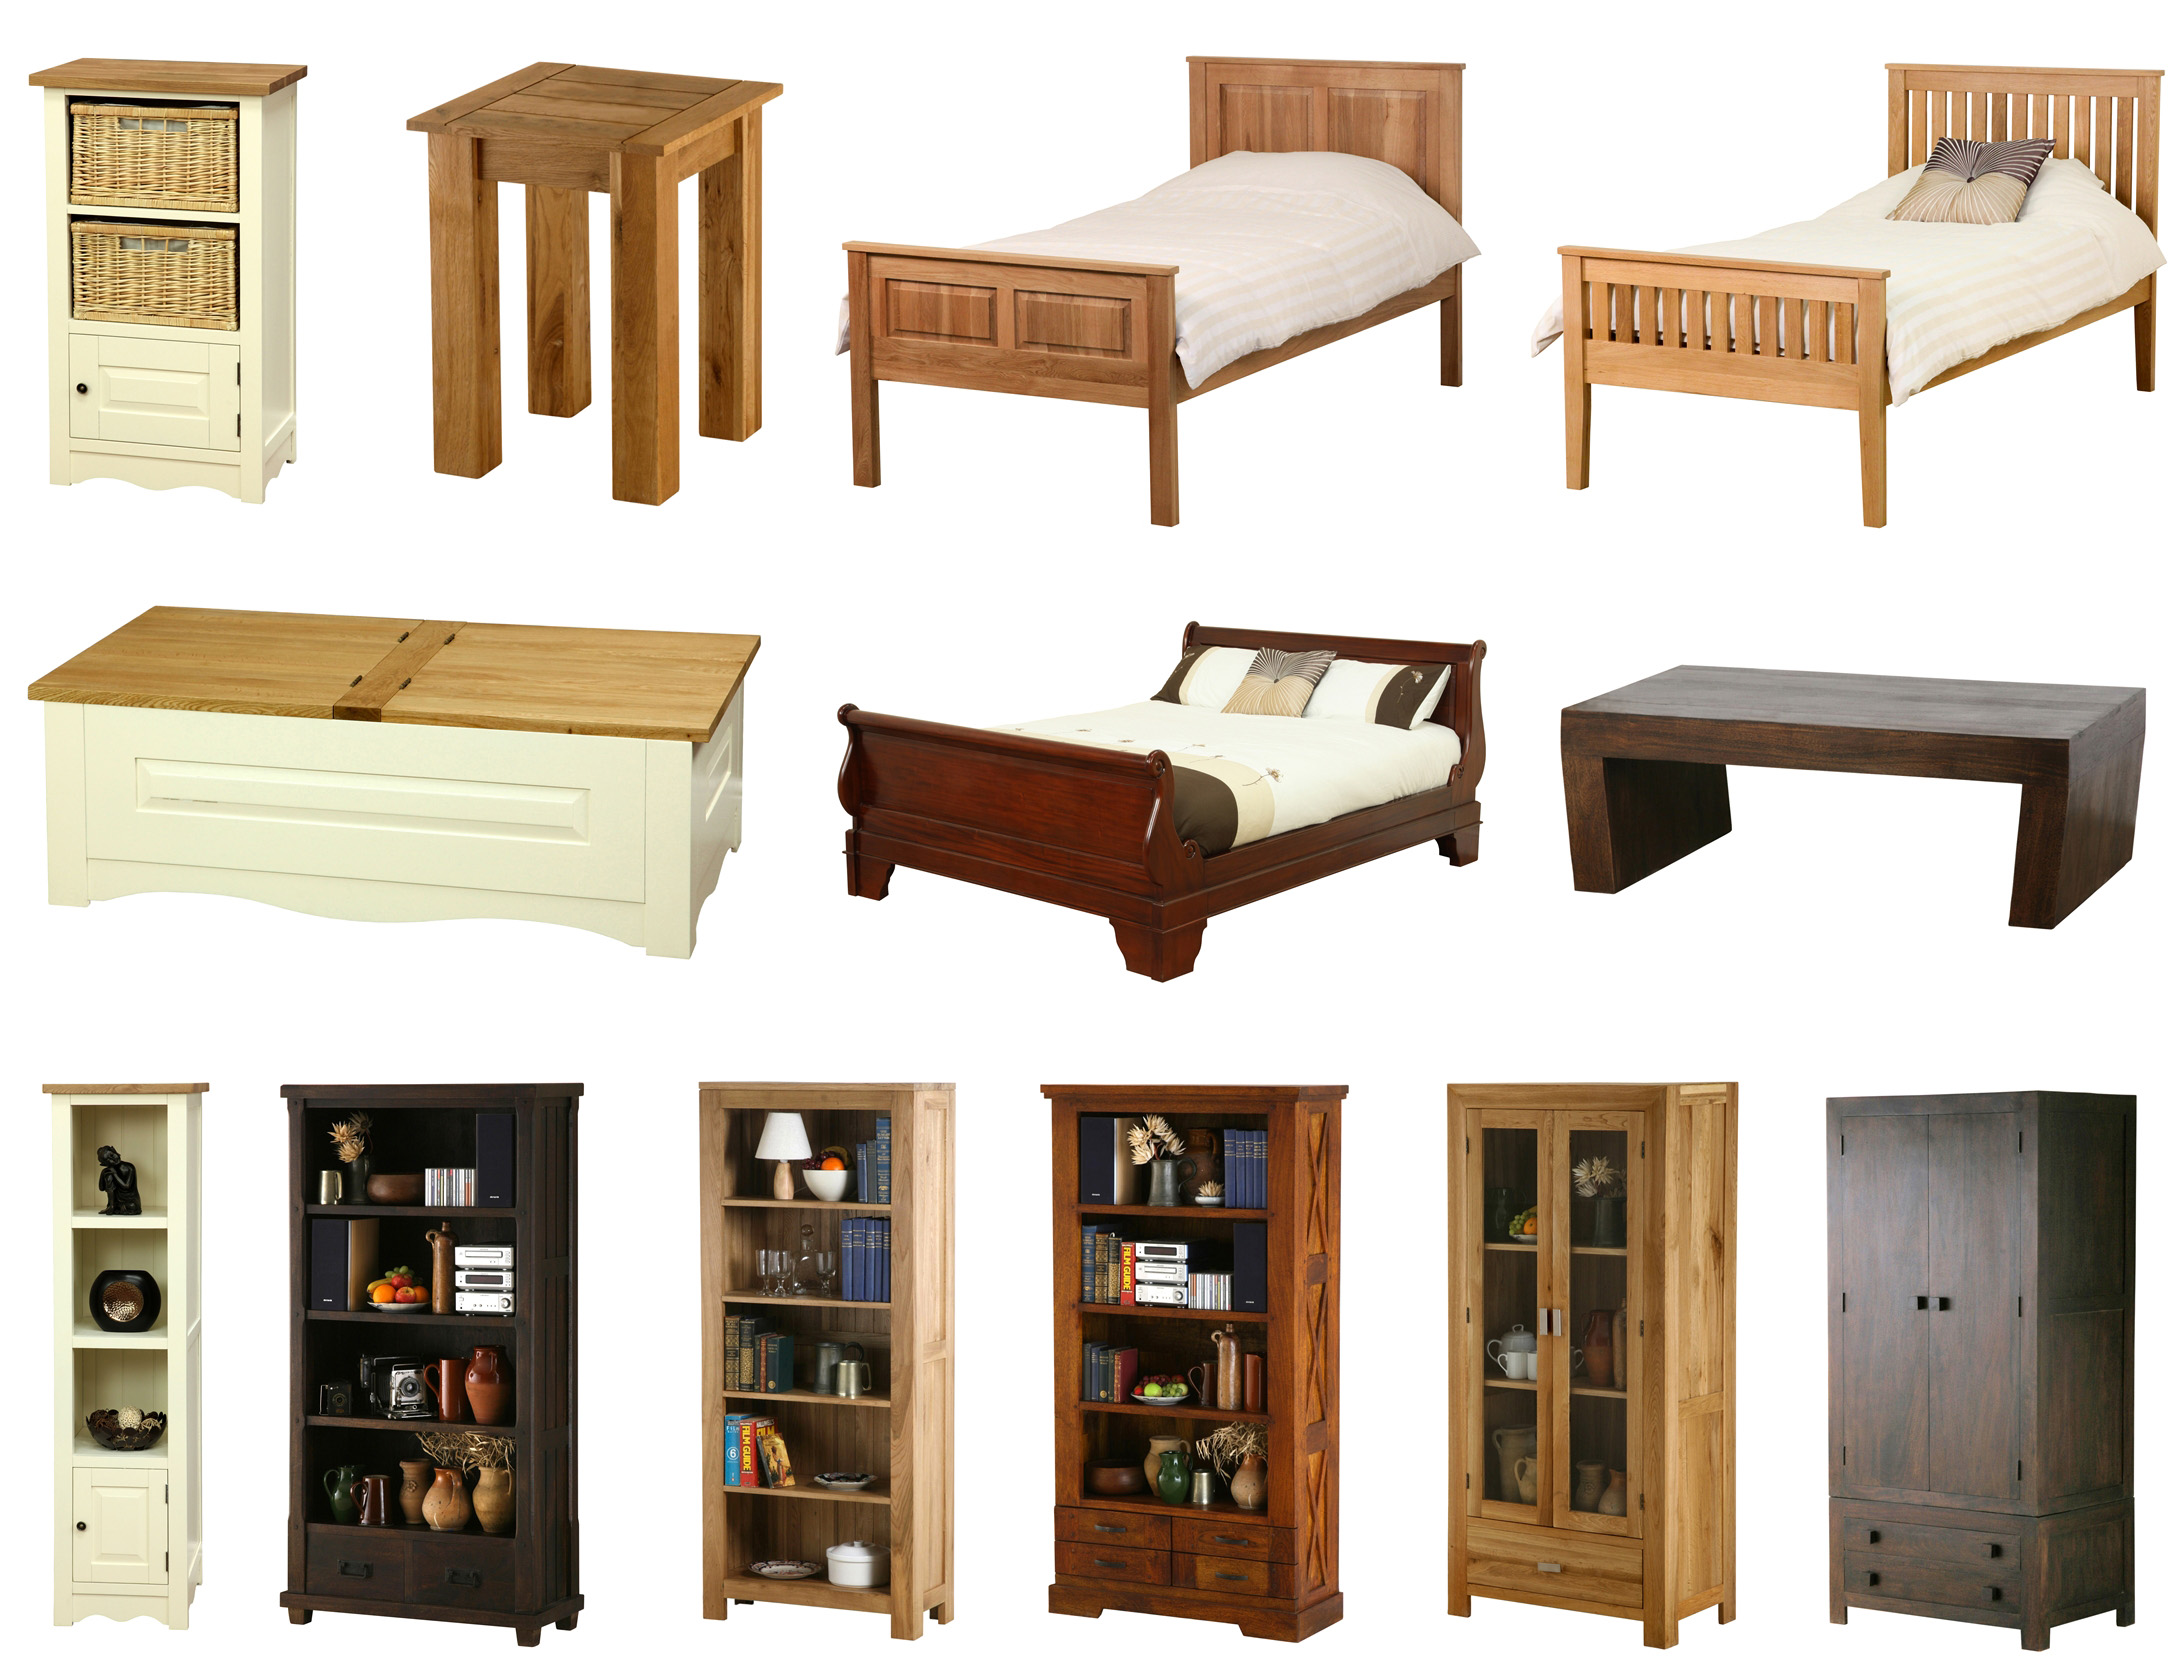 New Cut Out Images From Oak Furniture Land